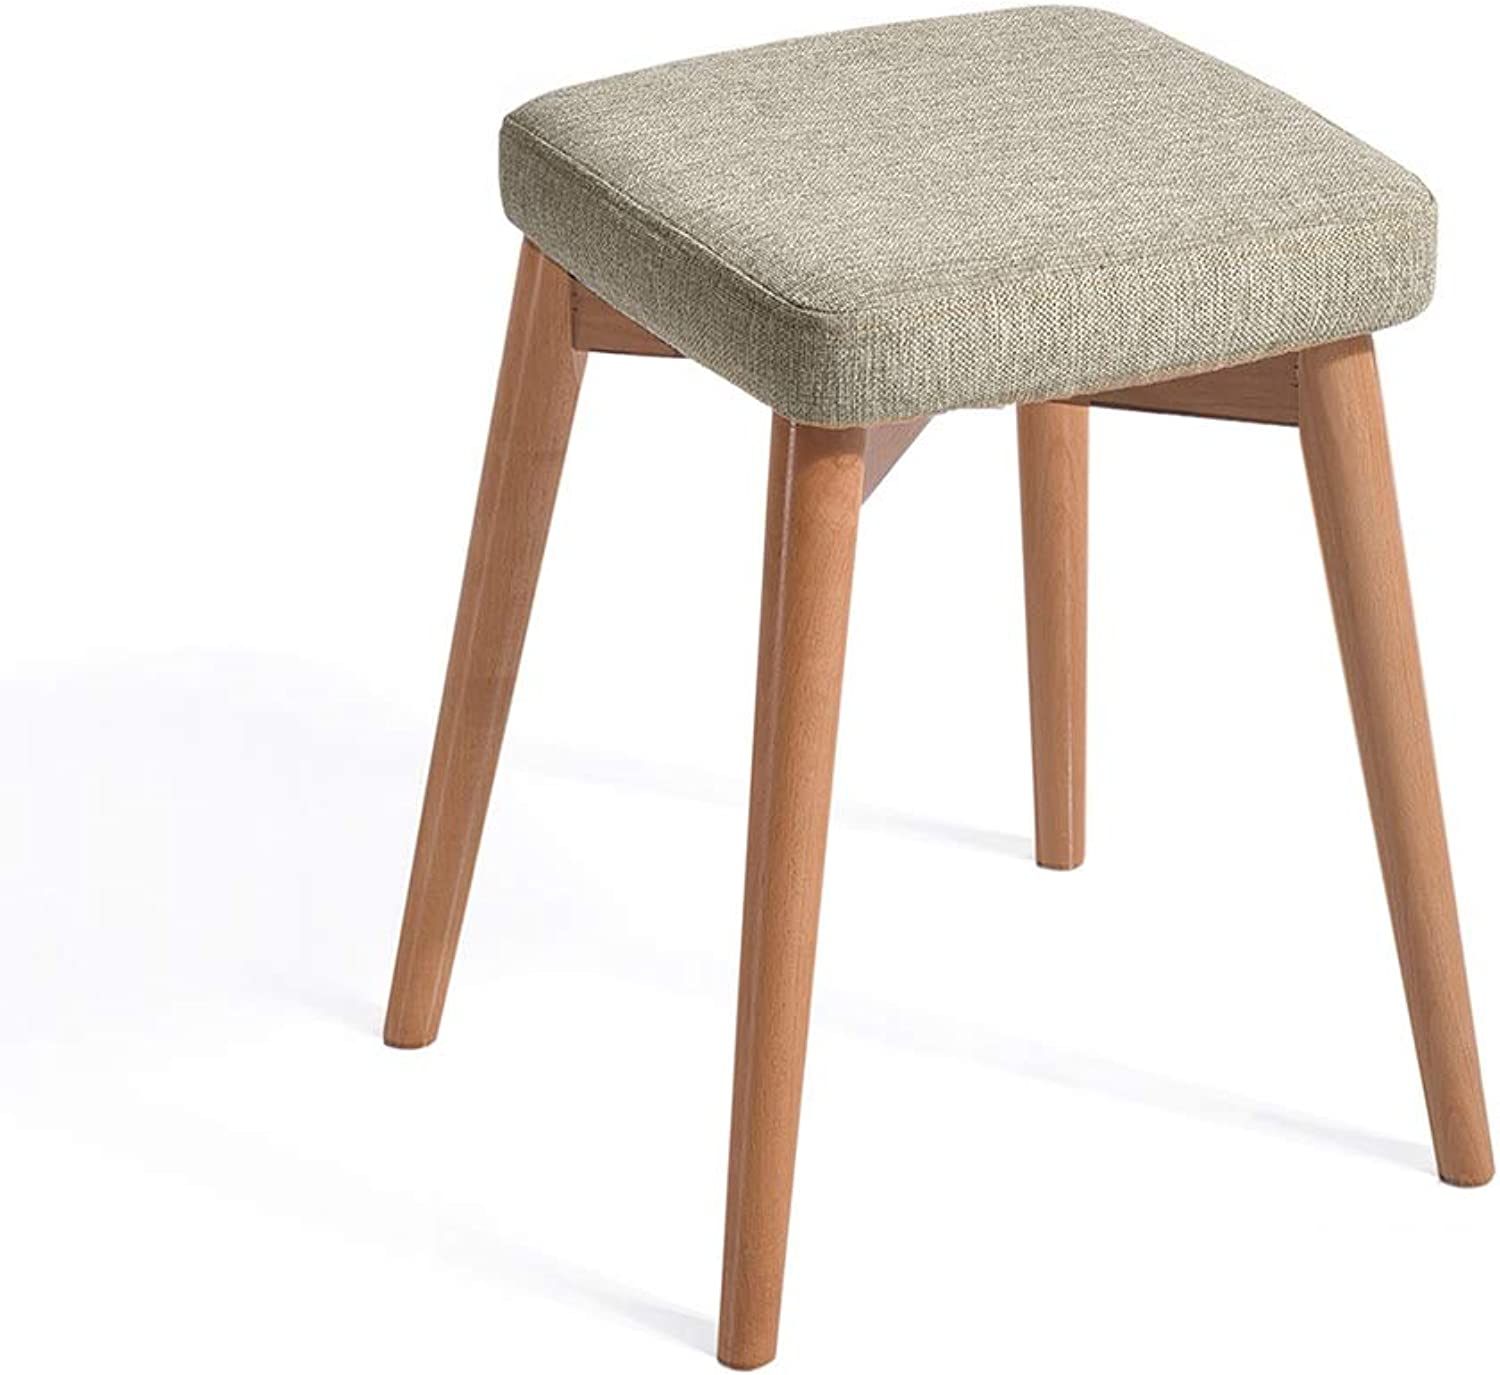 Solid Wood Stool, Home Dining Stool, Fashion Makeup Stool Dressing Stool, Living Room Fabric Dining Table Stool, Sponge Filled Seat,A